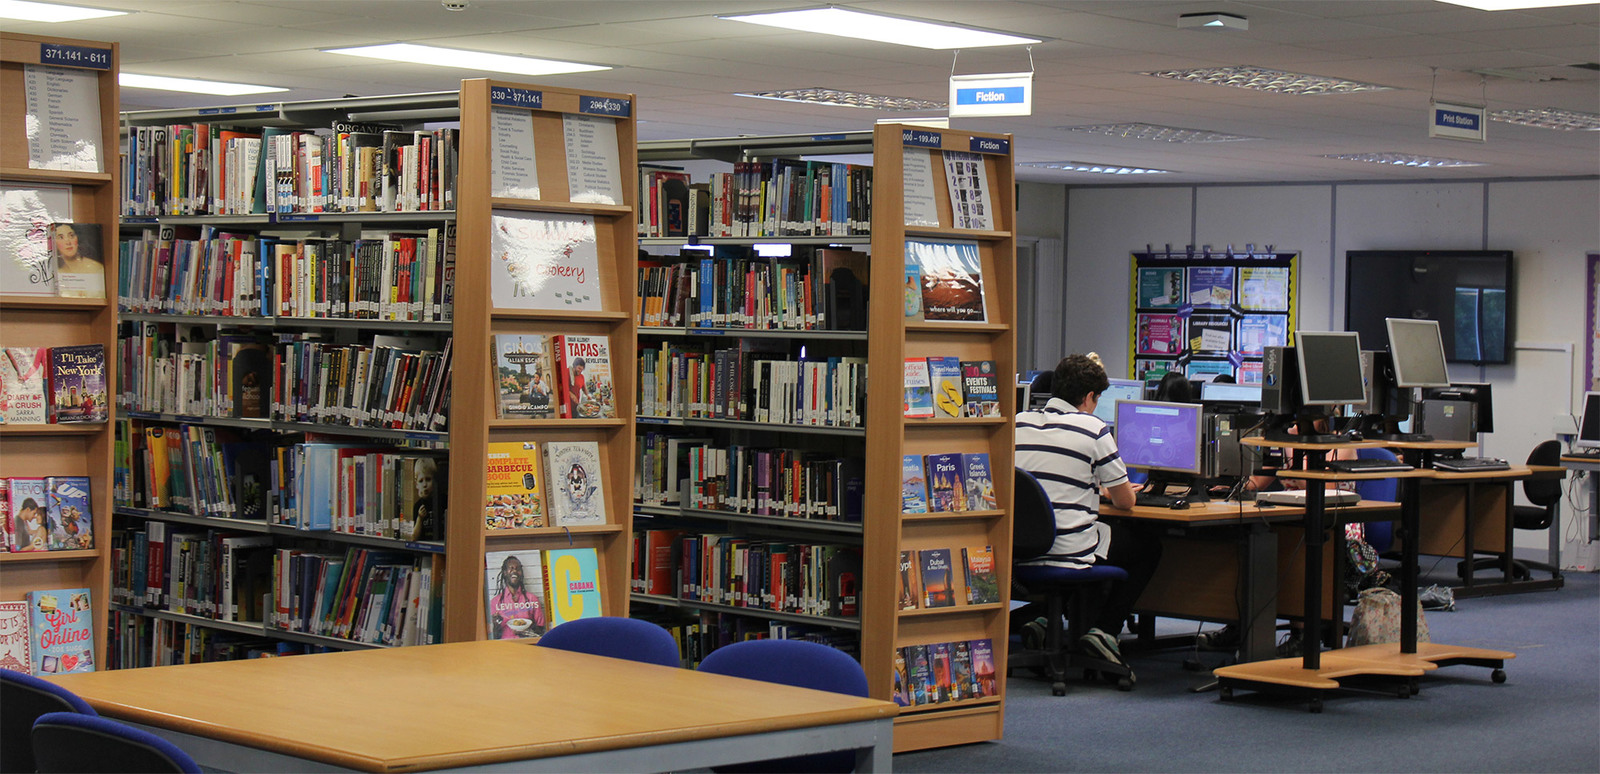 Library image for reading hack account